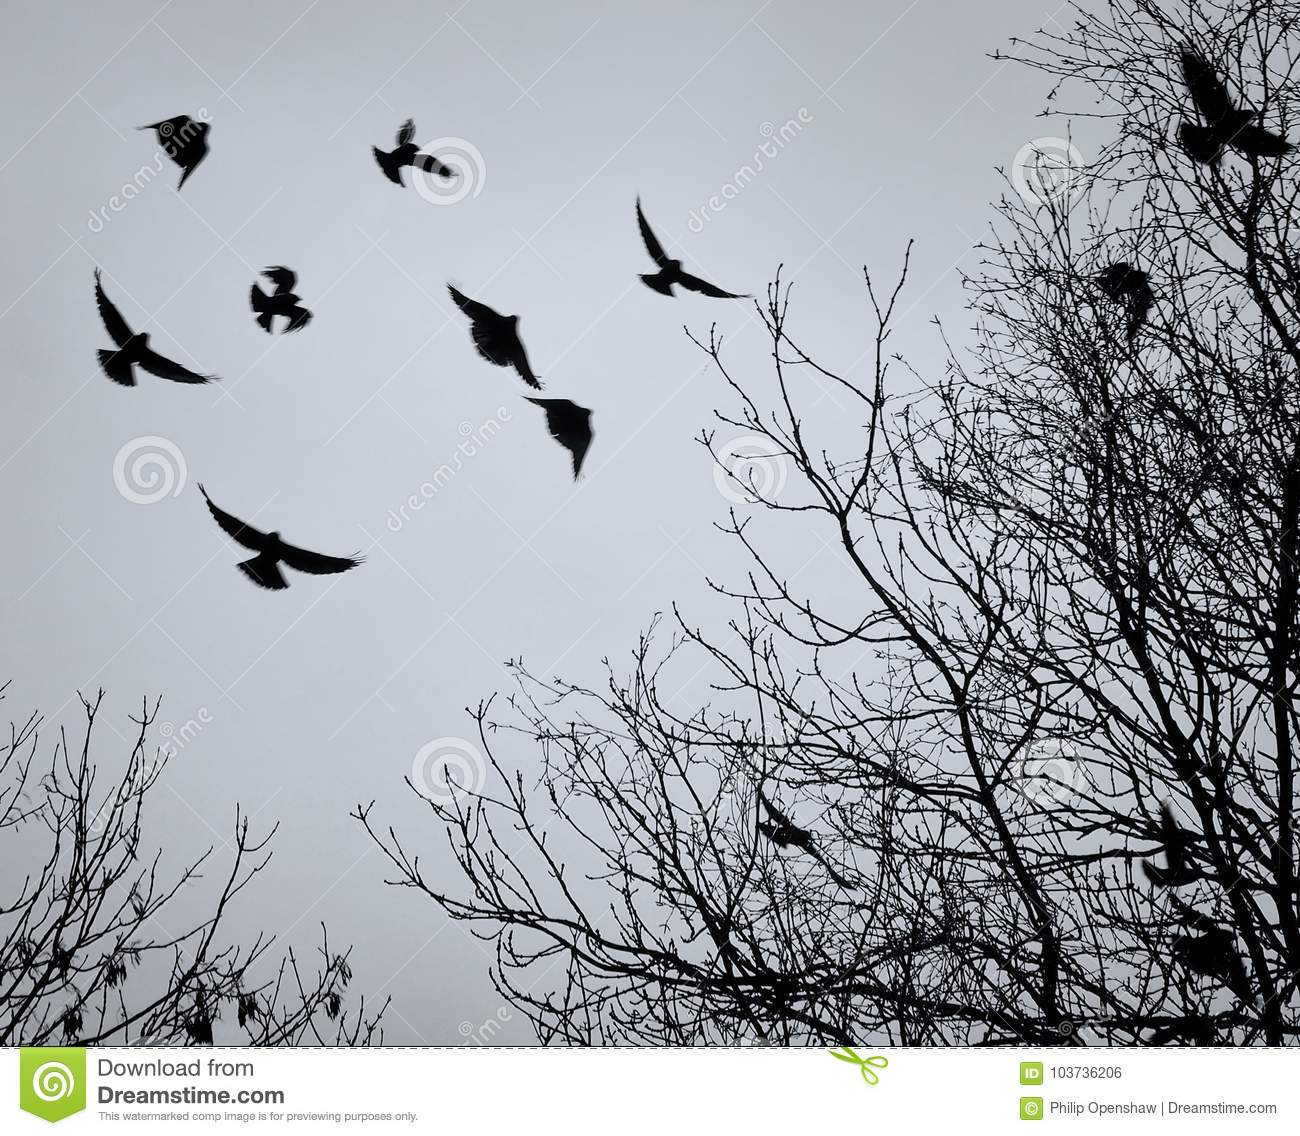 Crows flying amongst bare winter tree branches